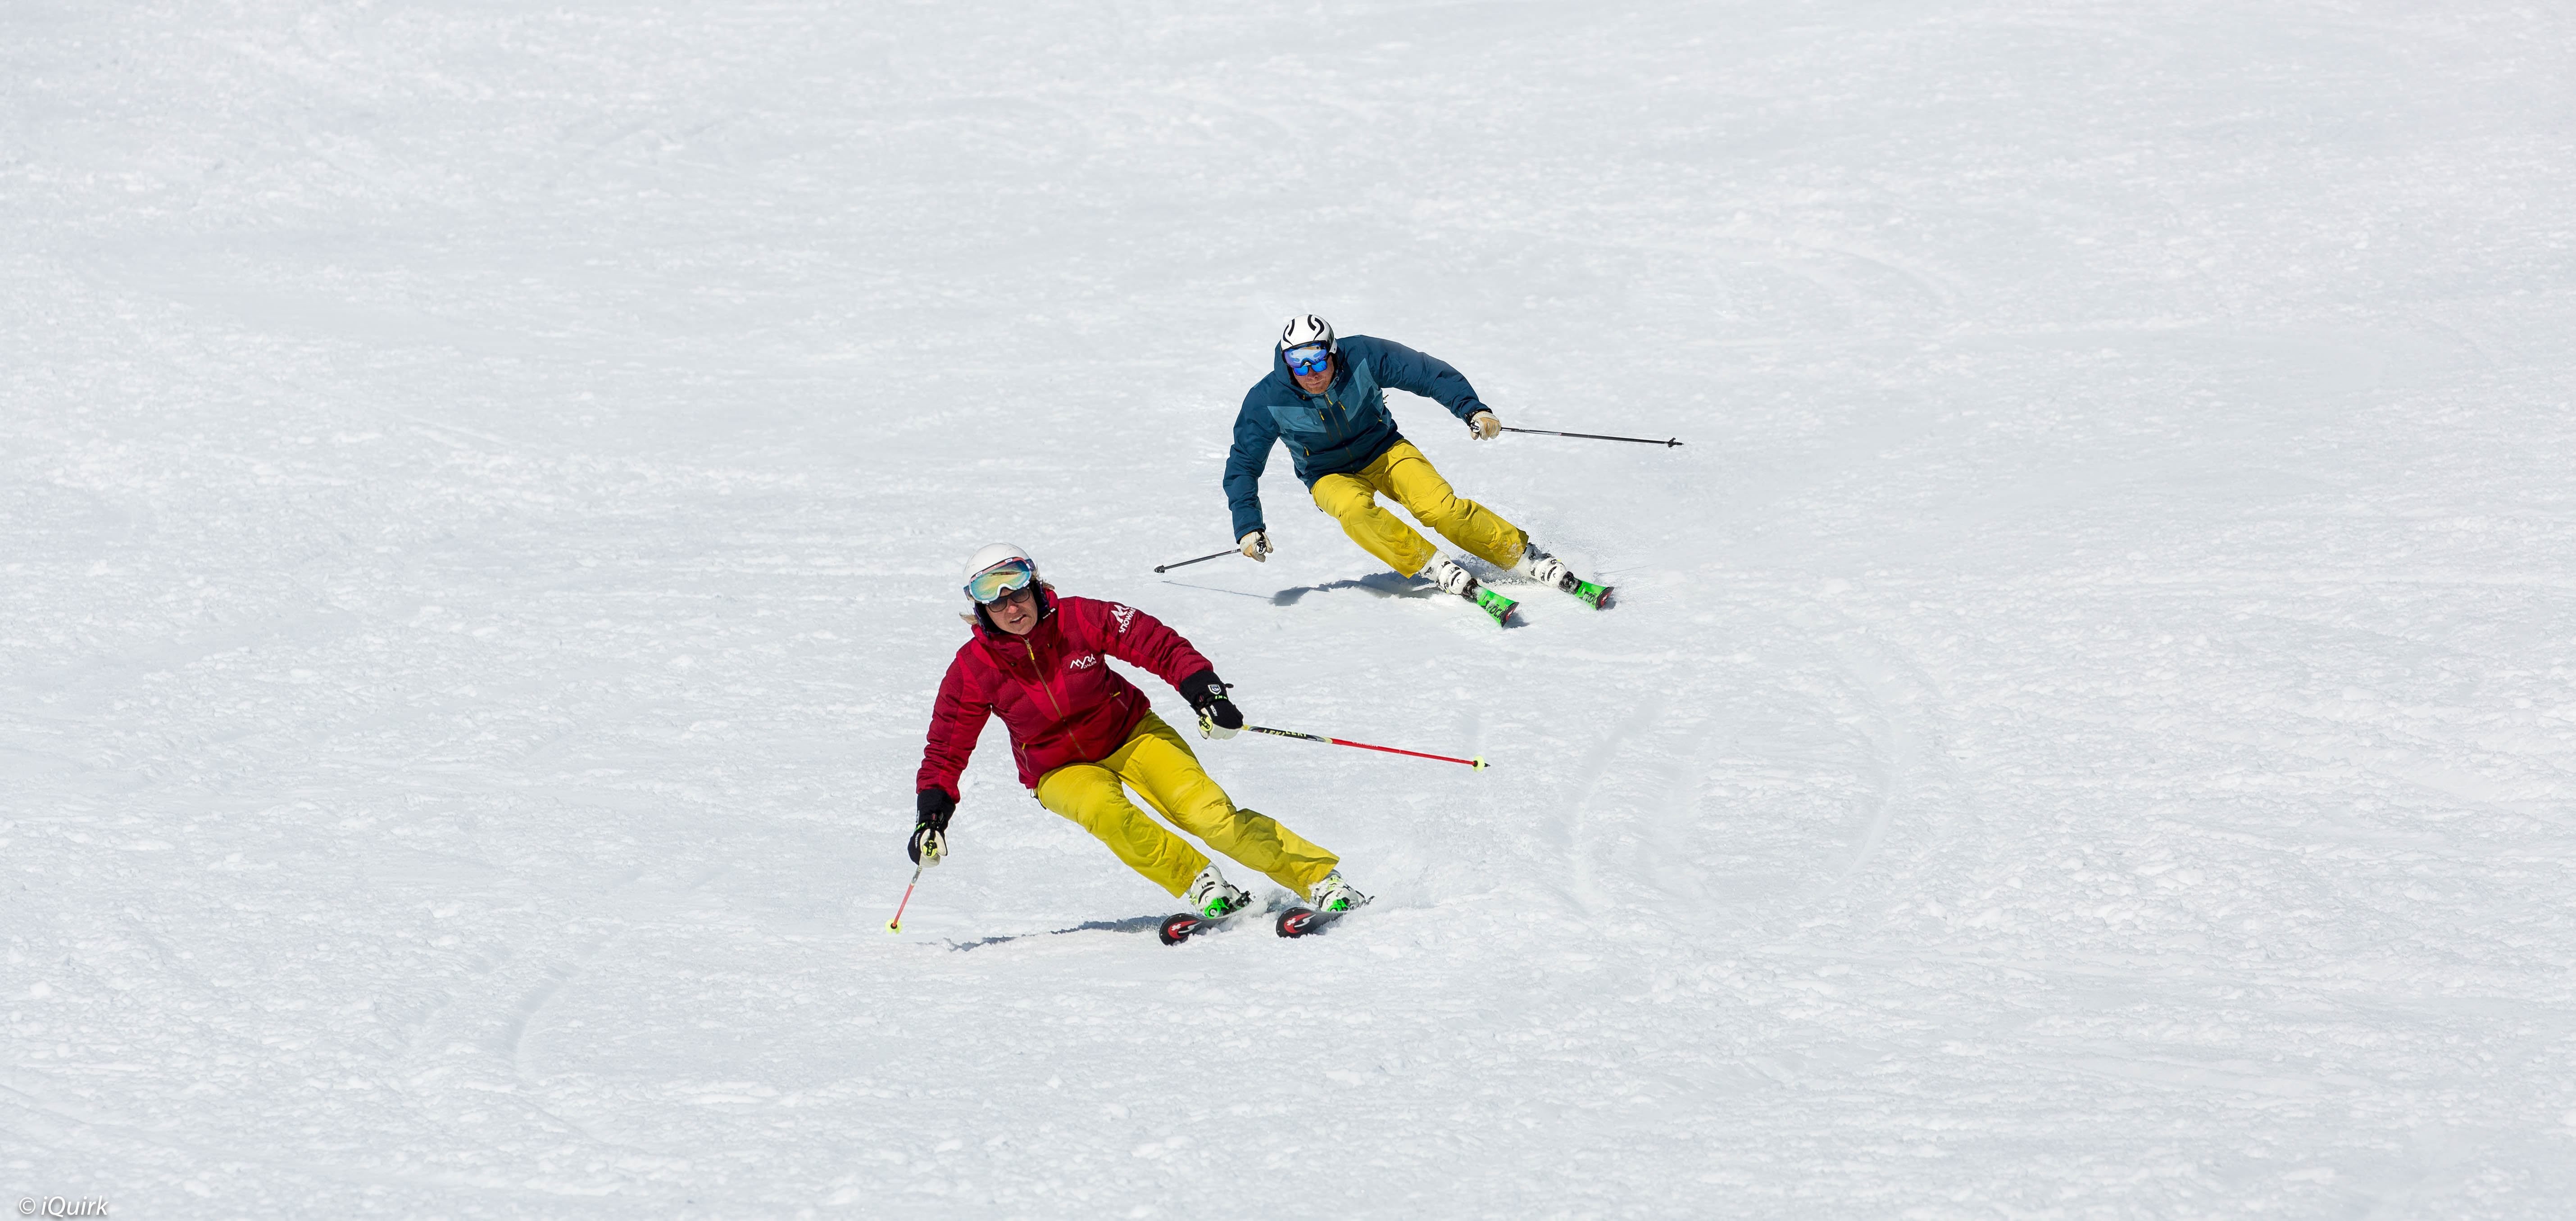 Private lessons with Myrkdalen skischool